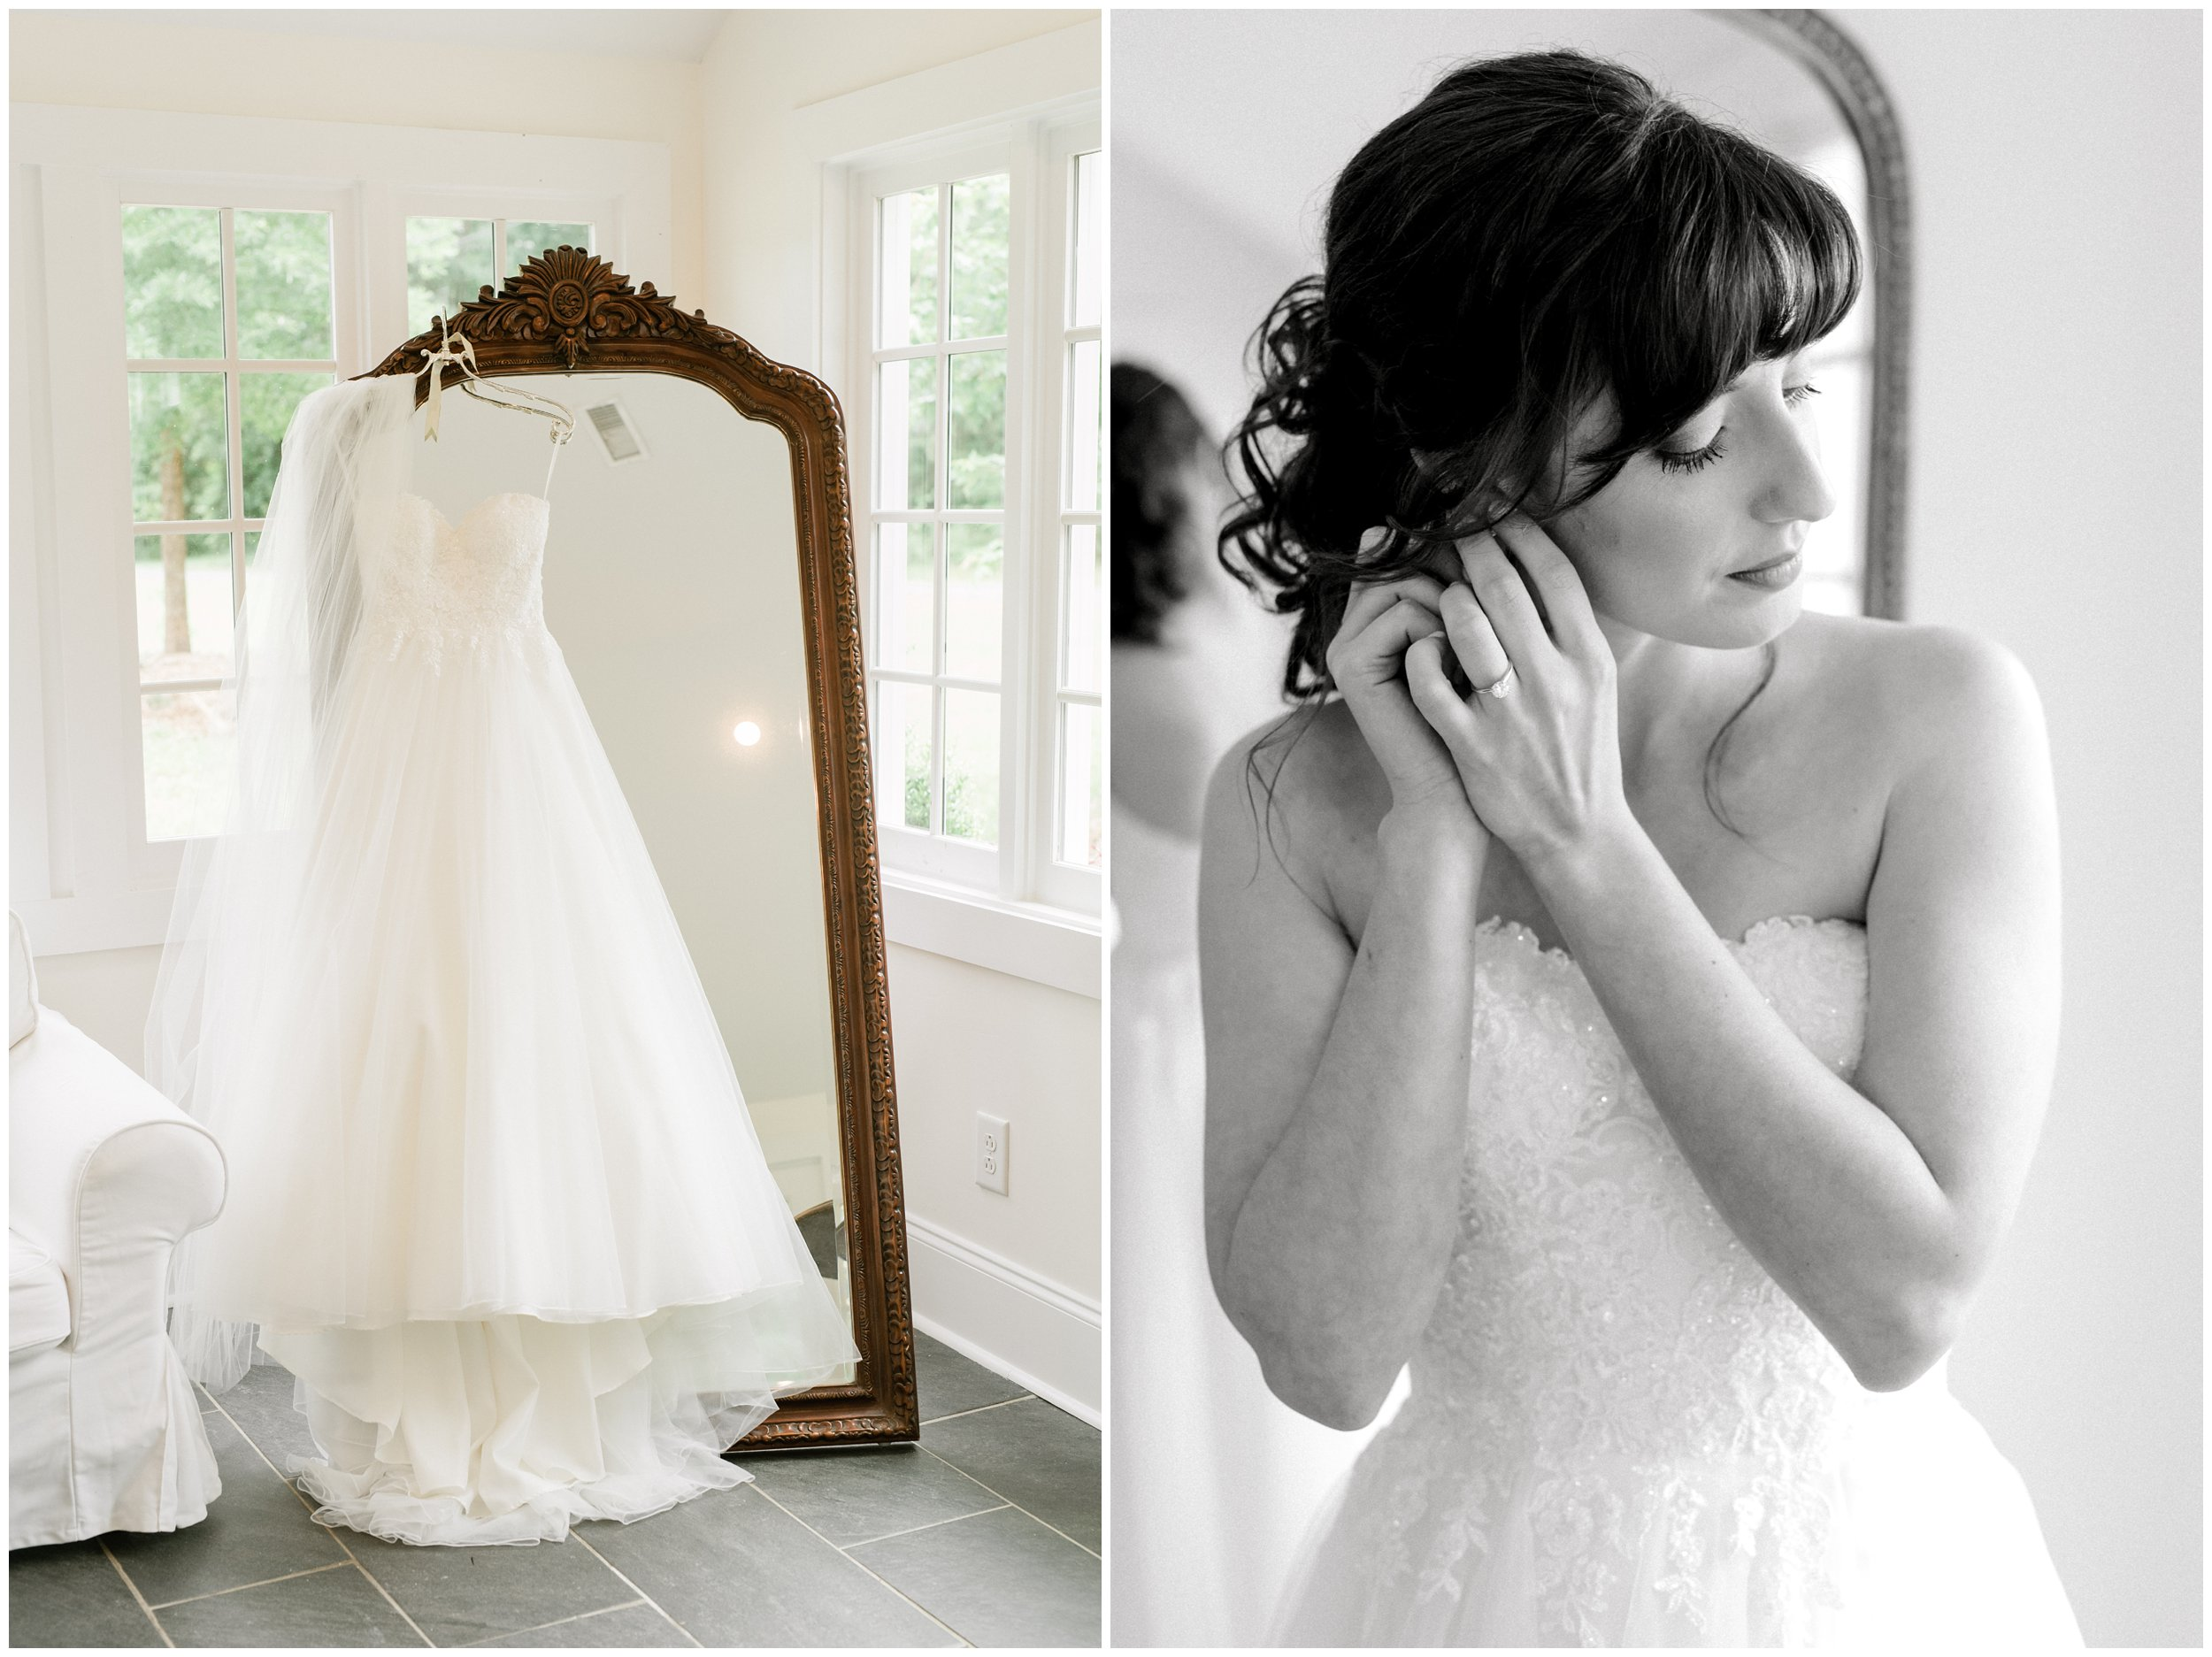 beautiful wedding dress and bridal details